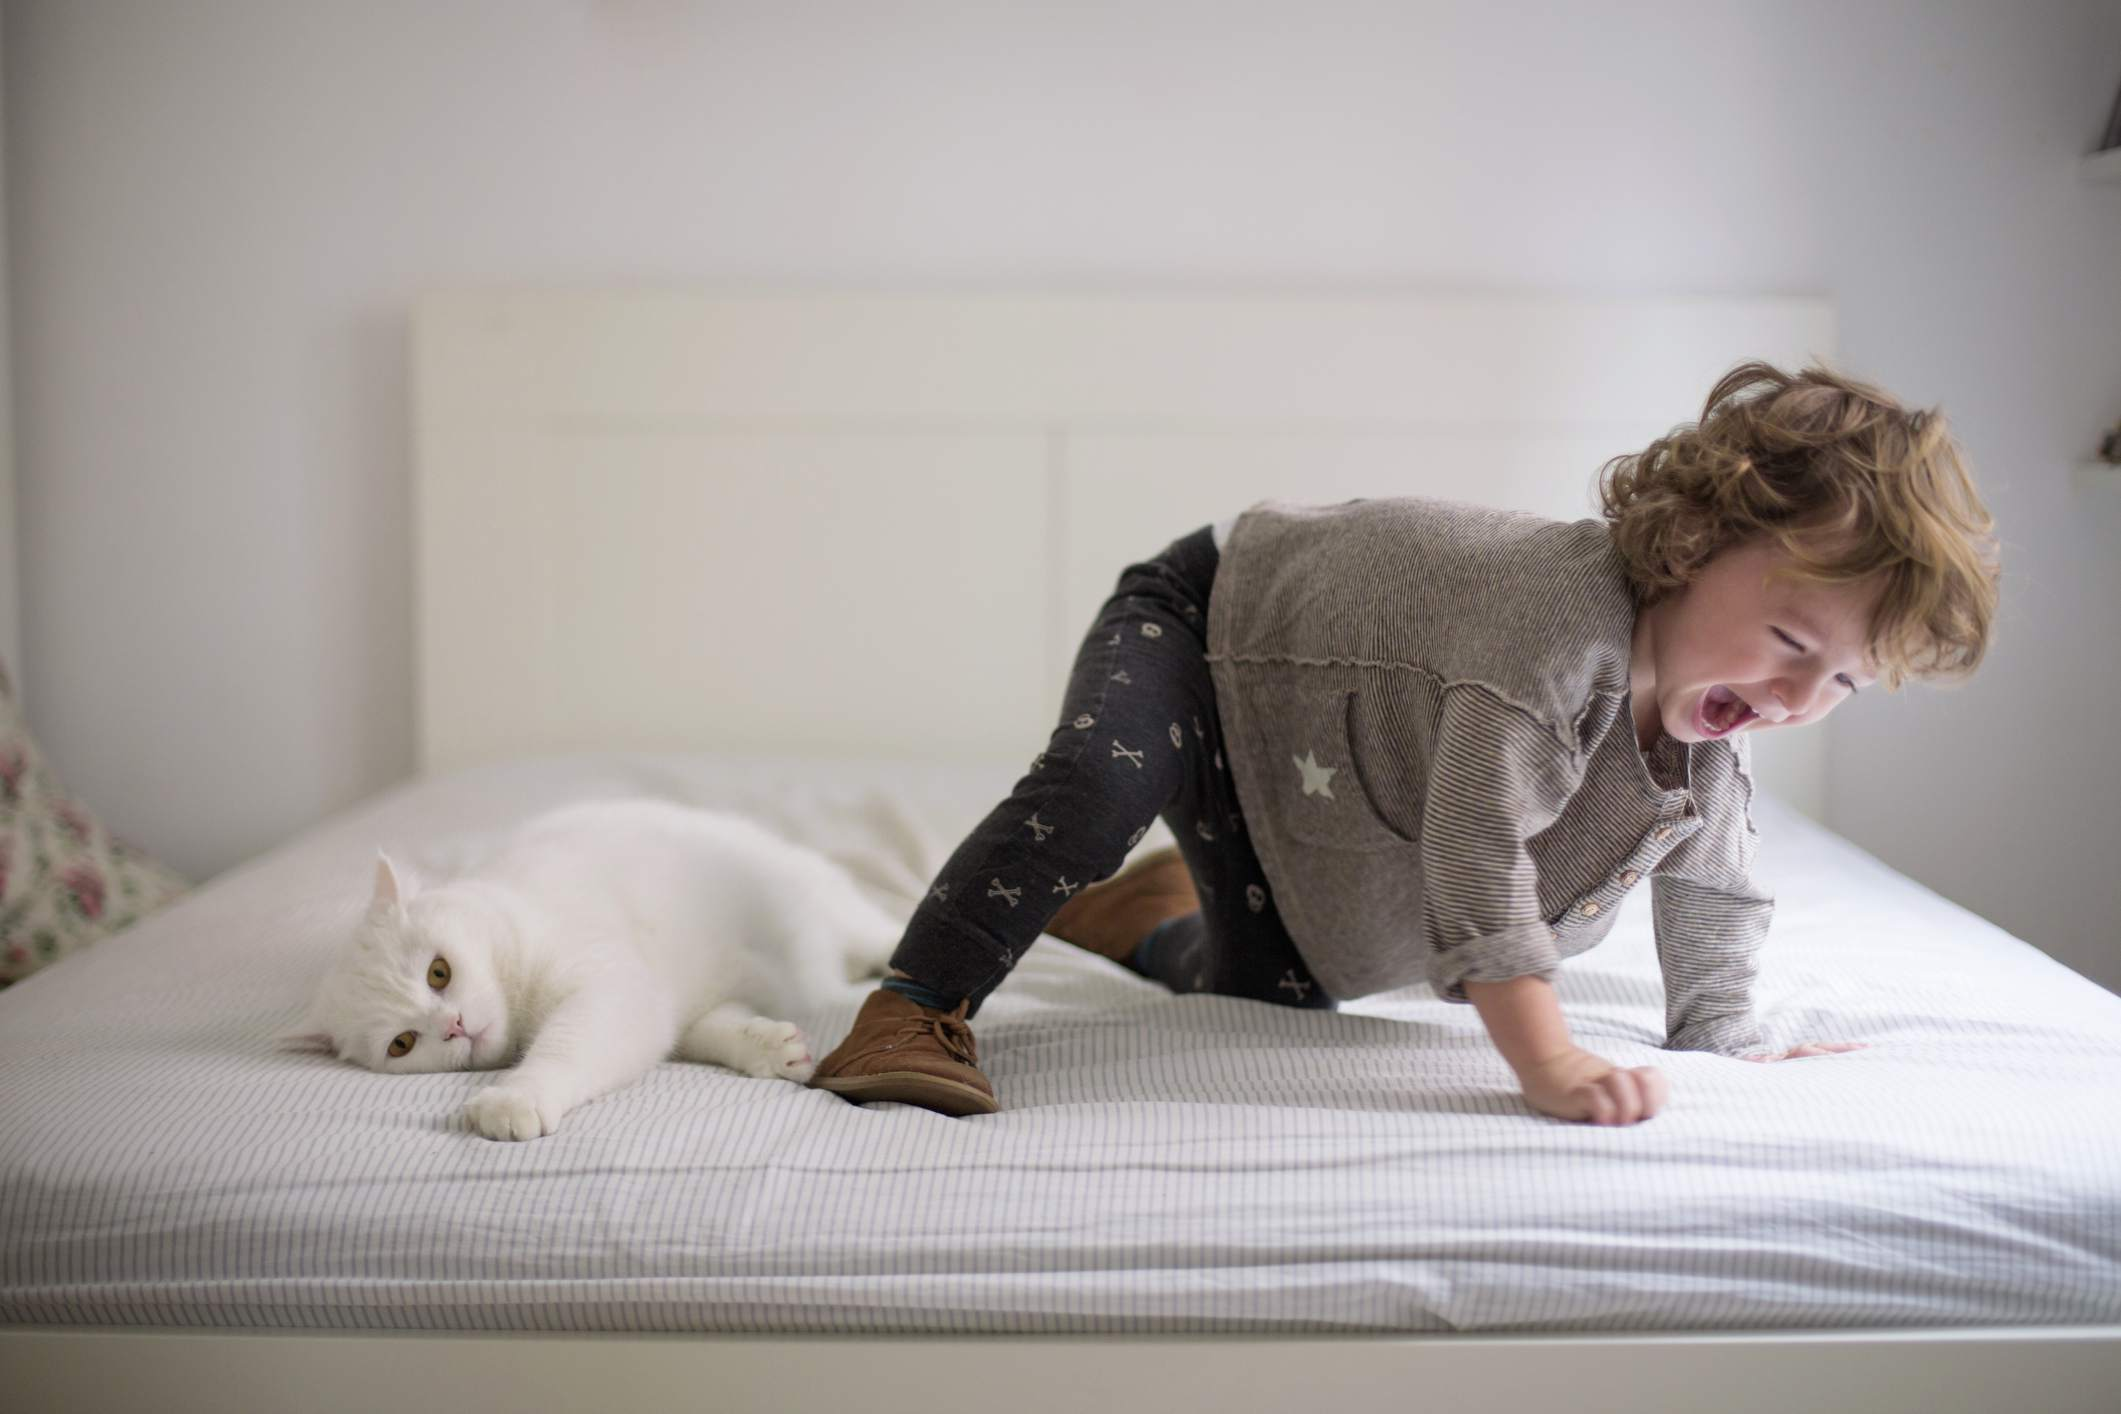 Cat not playing with toddler on parents' bed